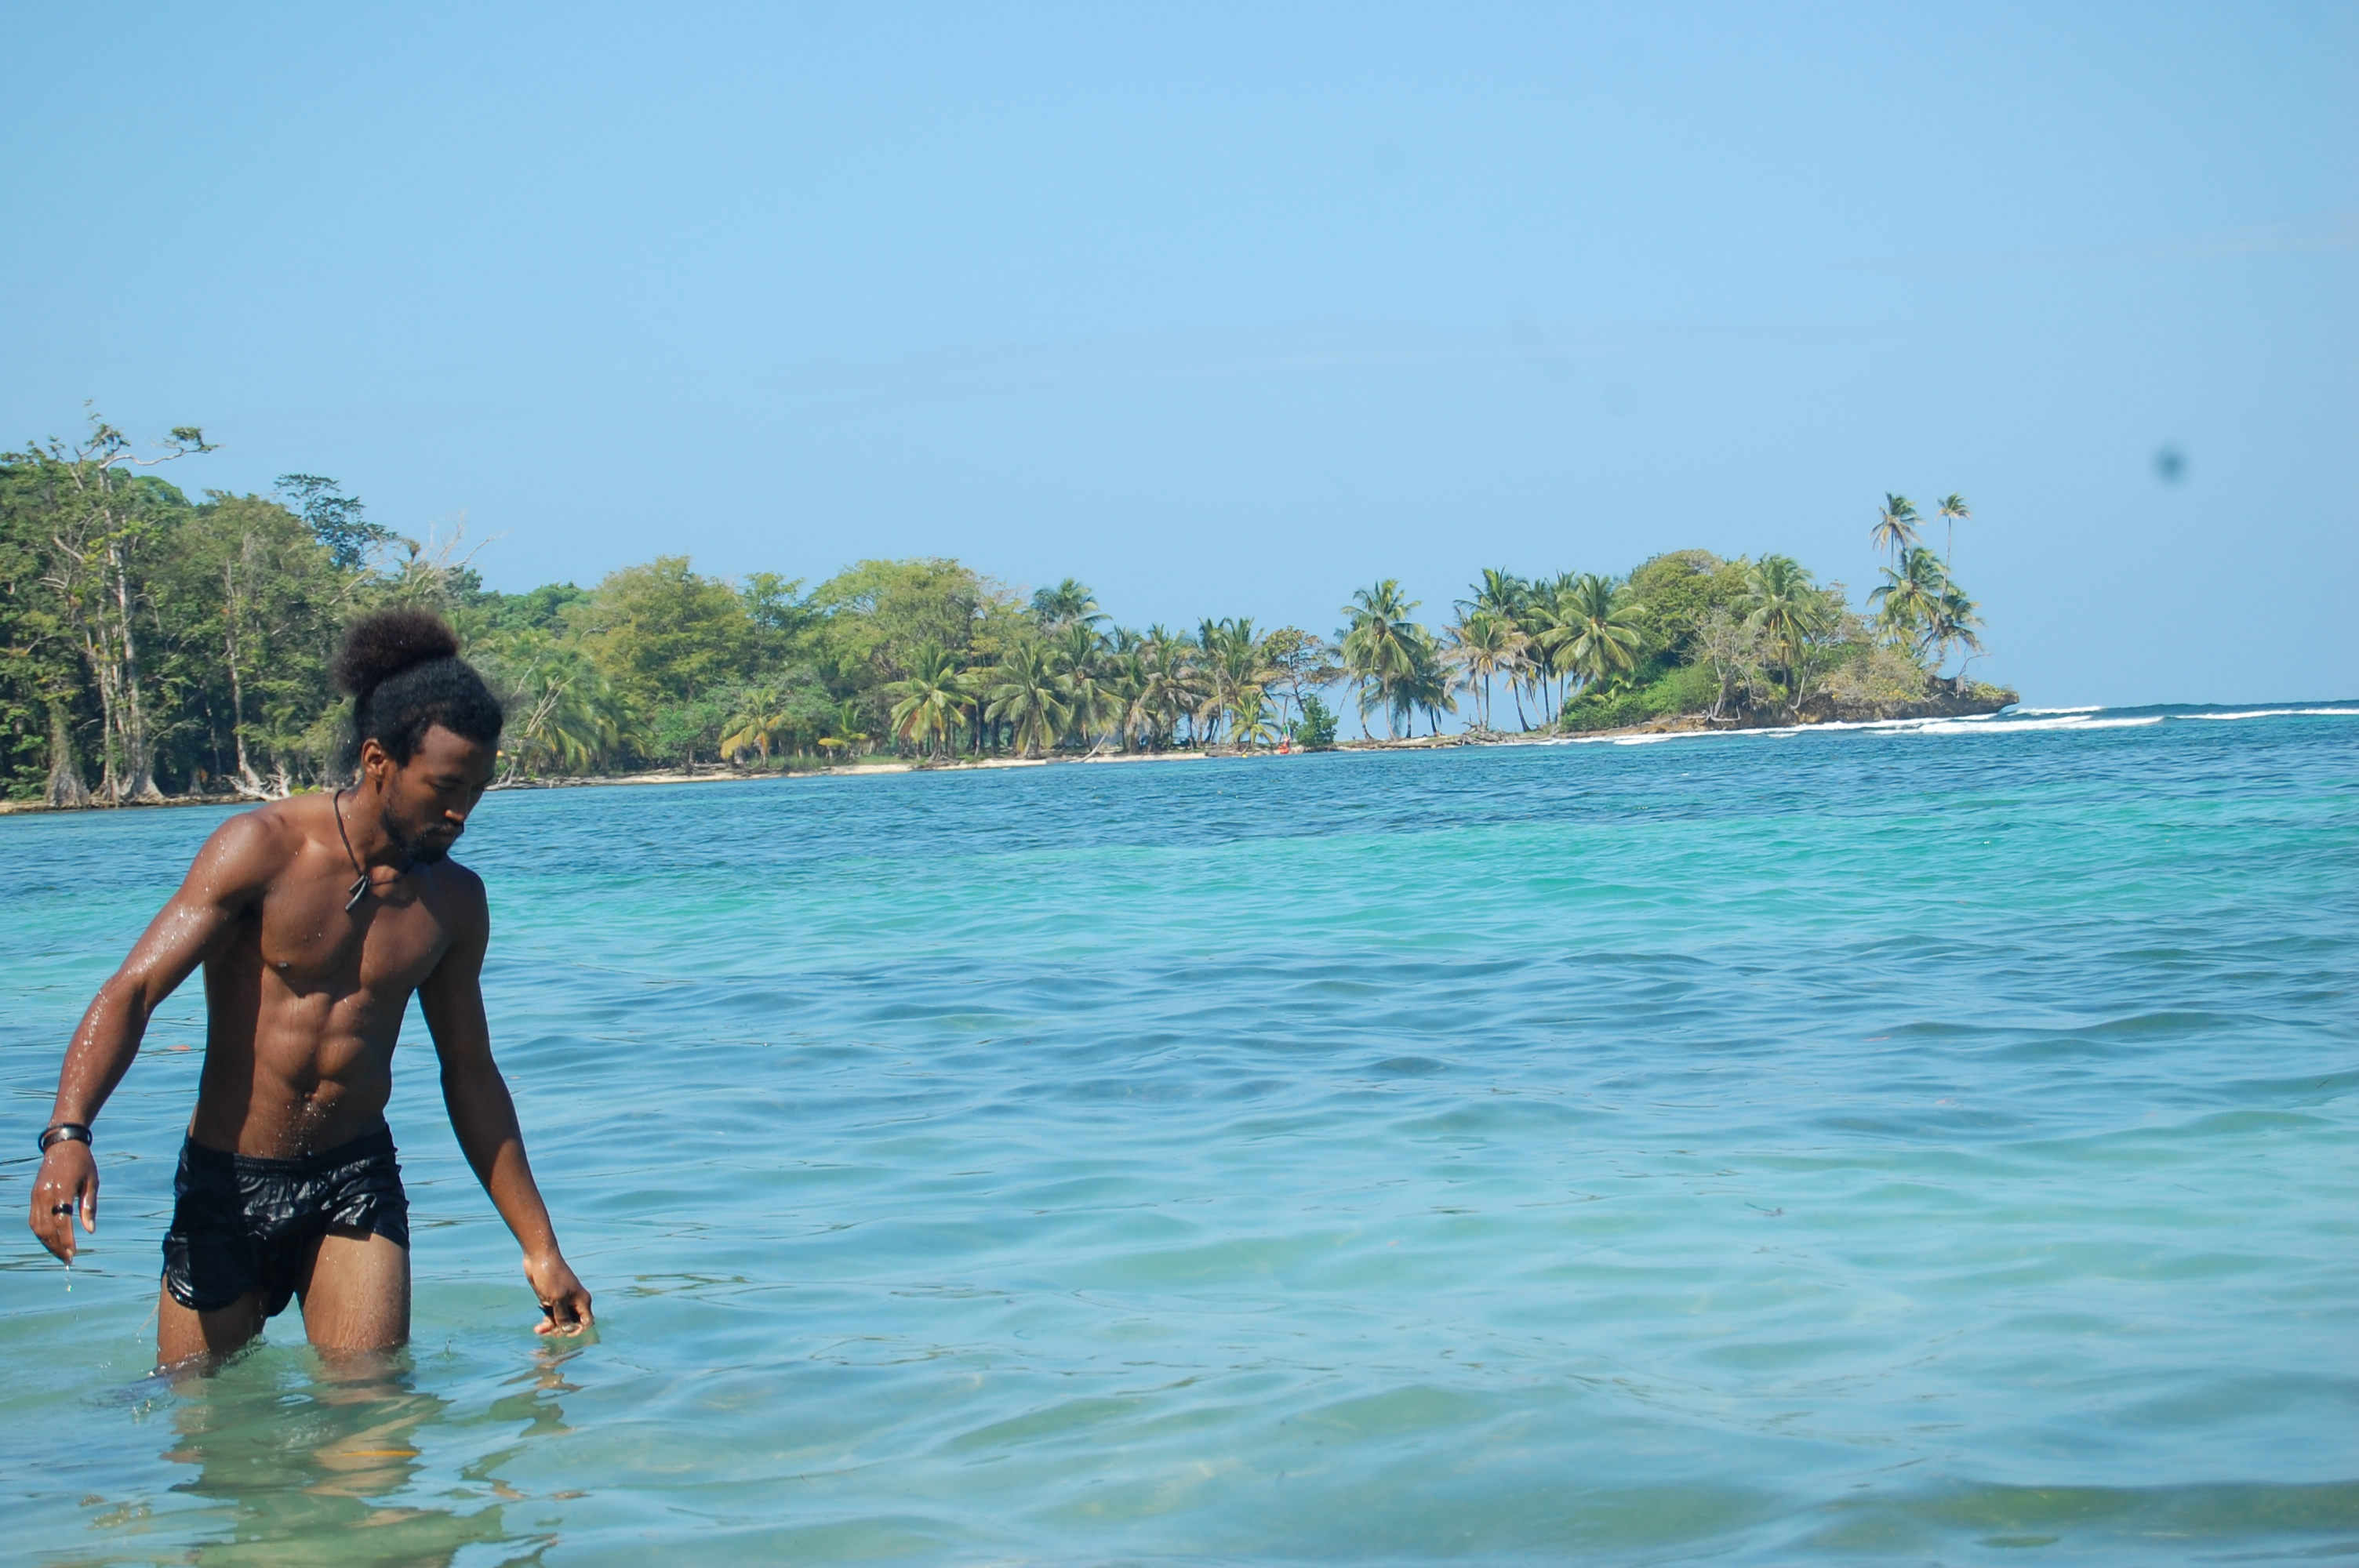 The Beaches Of Bocas Del Toro Are Filled With Beauty